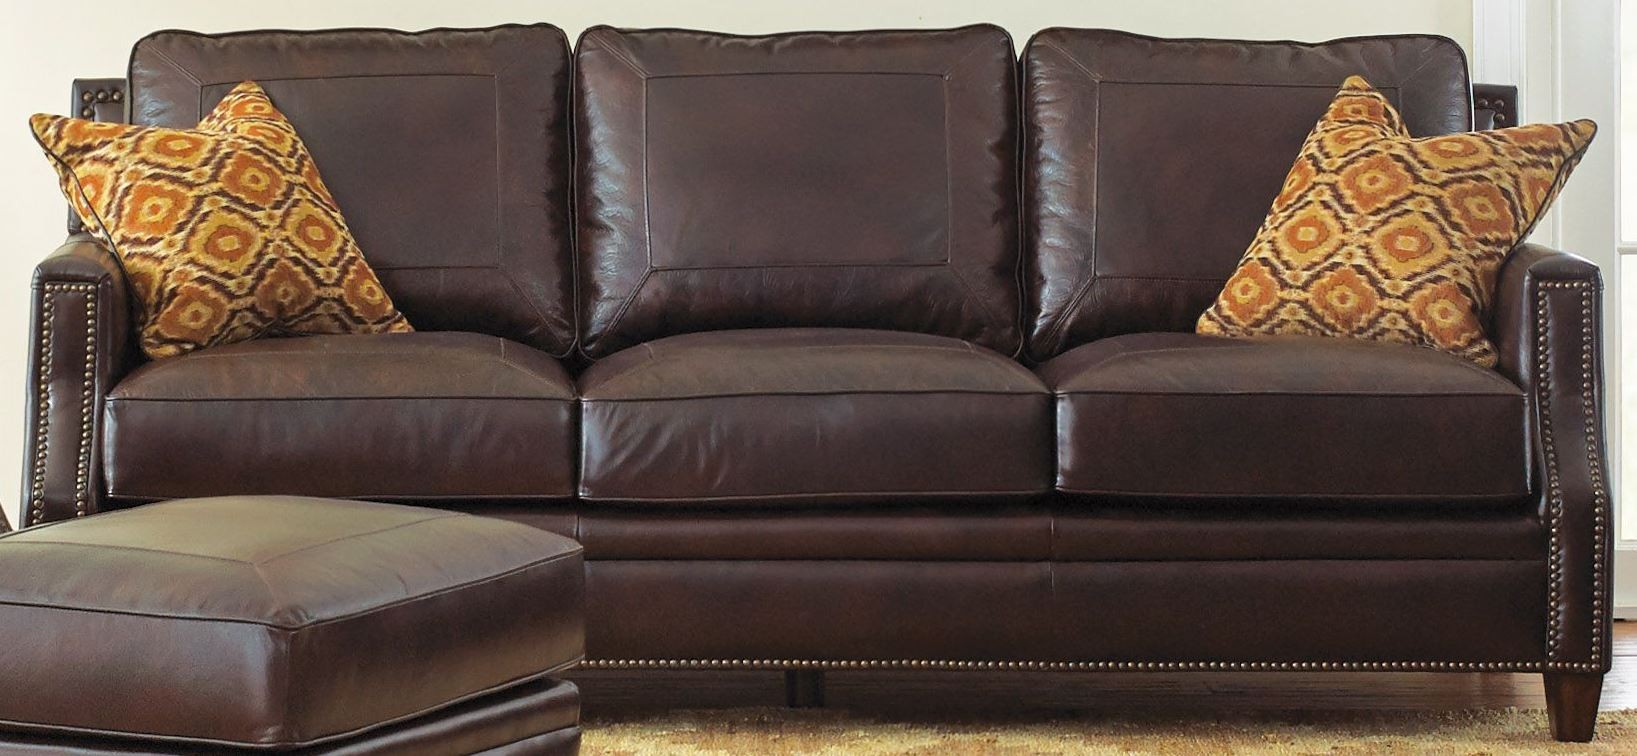 Throw Pillows For Leather Sofas : Caldwell Leather Sofa with 2 Accent Pillows from Steve Silver (CW900S) Coleman Furniture